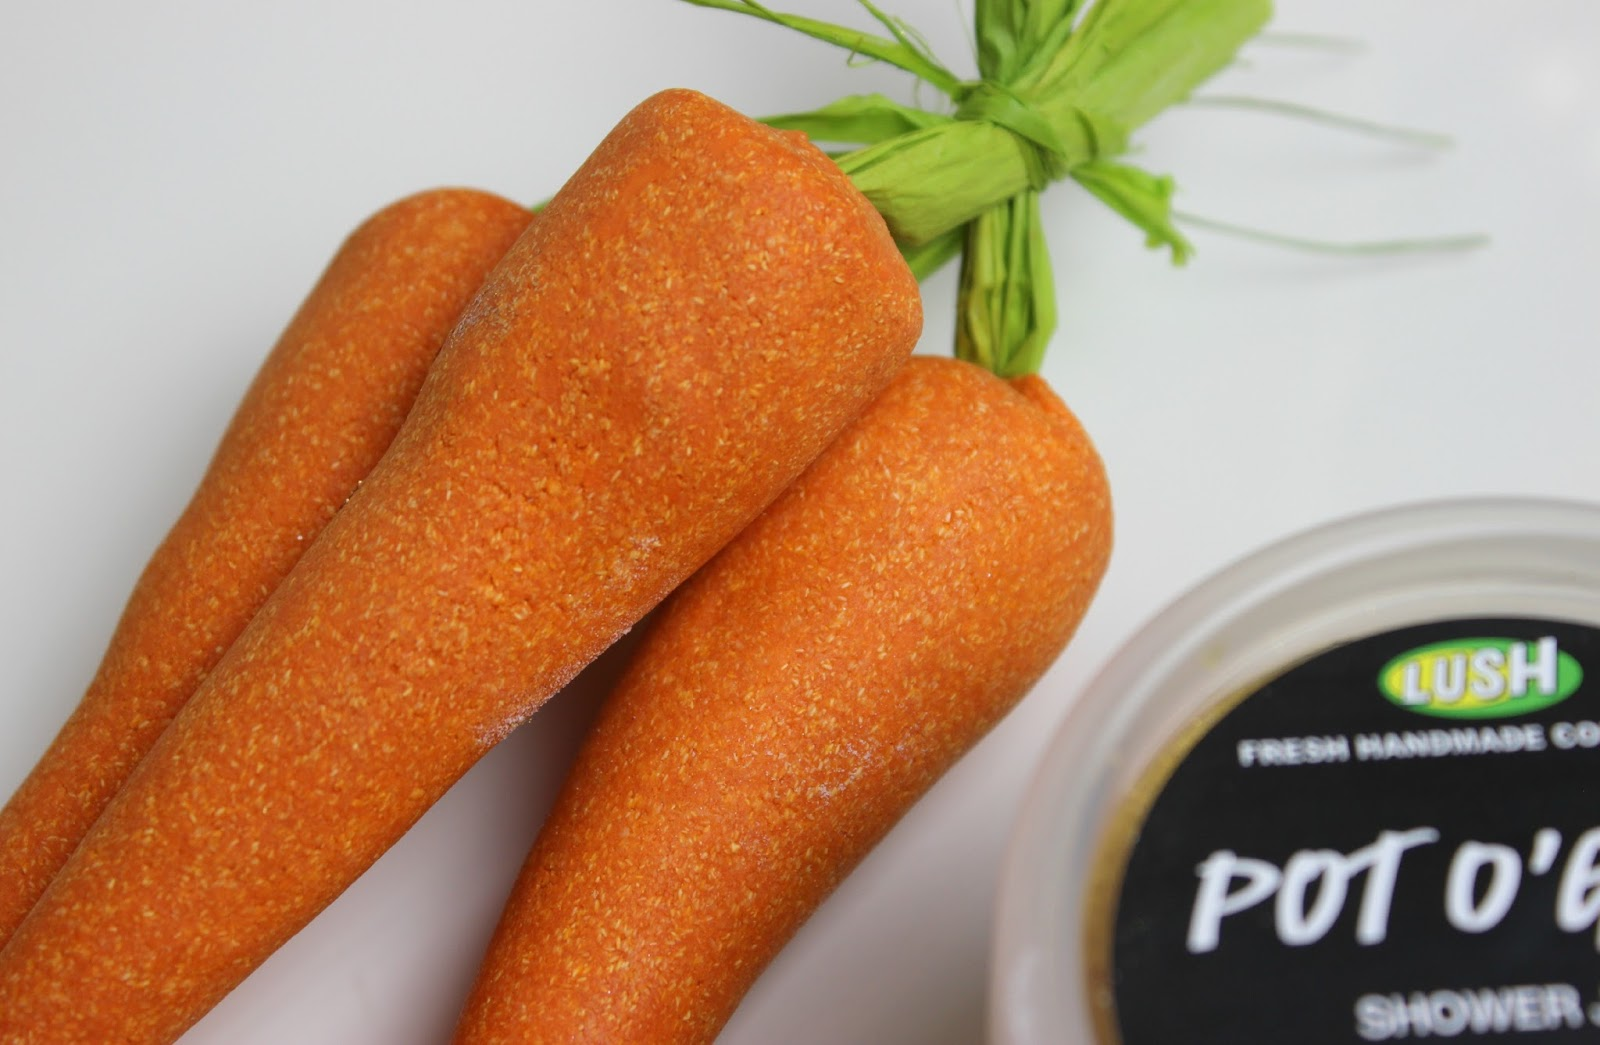 A picture of Lush Bunch of Carrots Reusable Bubble Bar